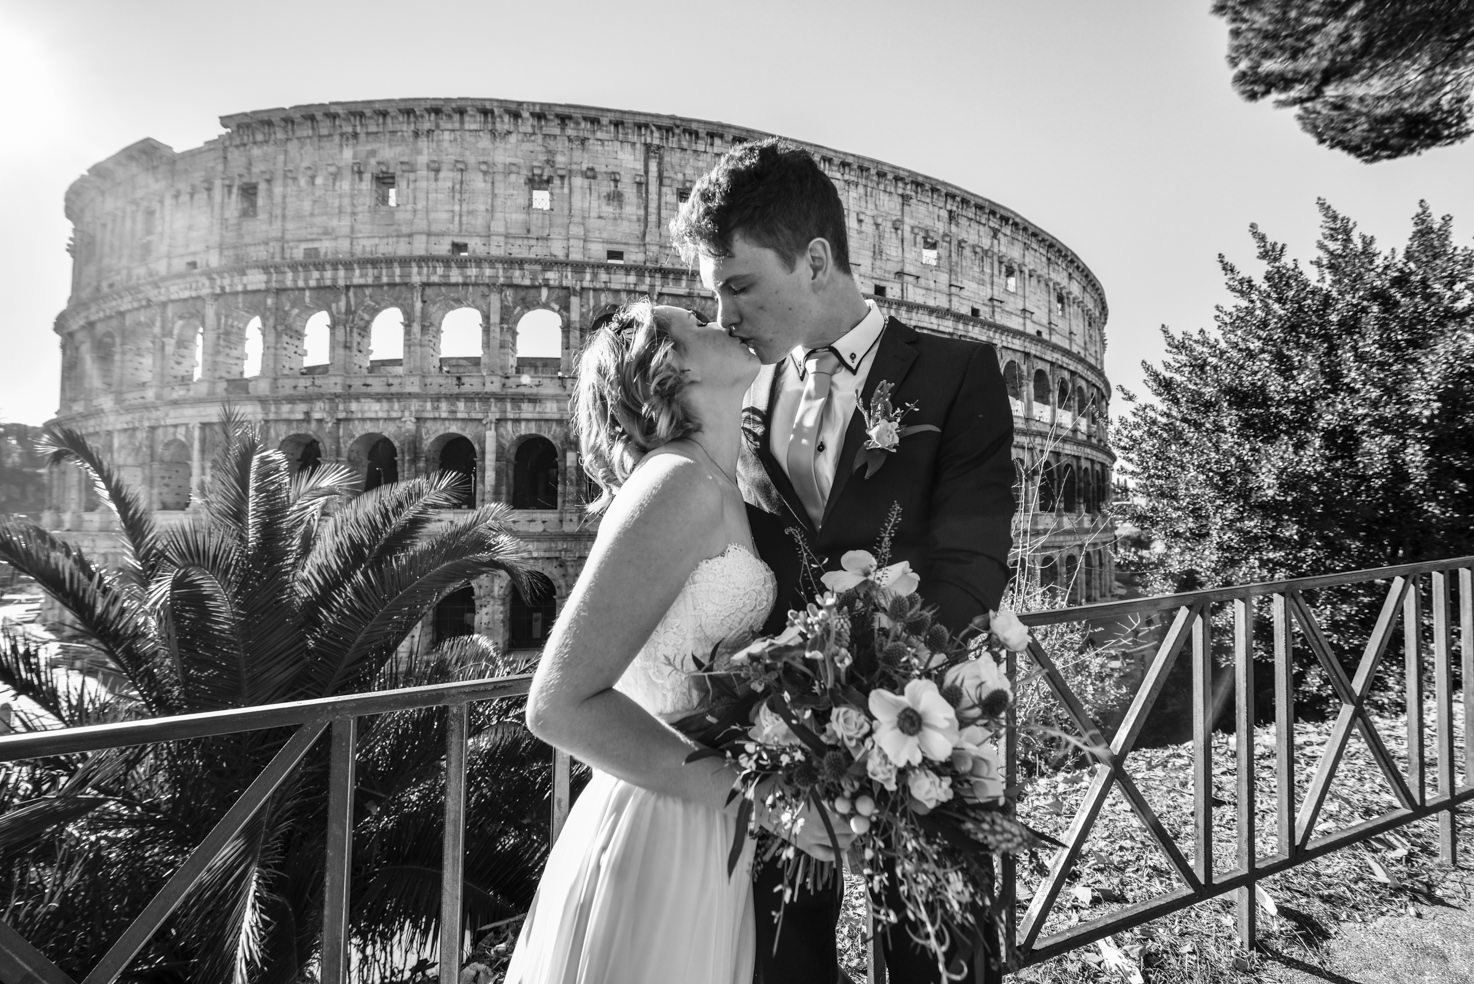 A kiss in front of the Colosseum